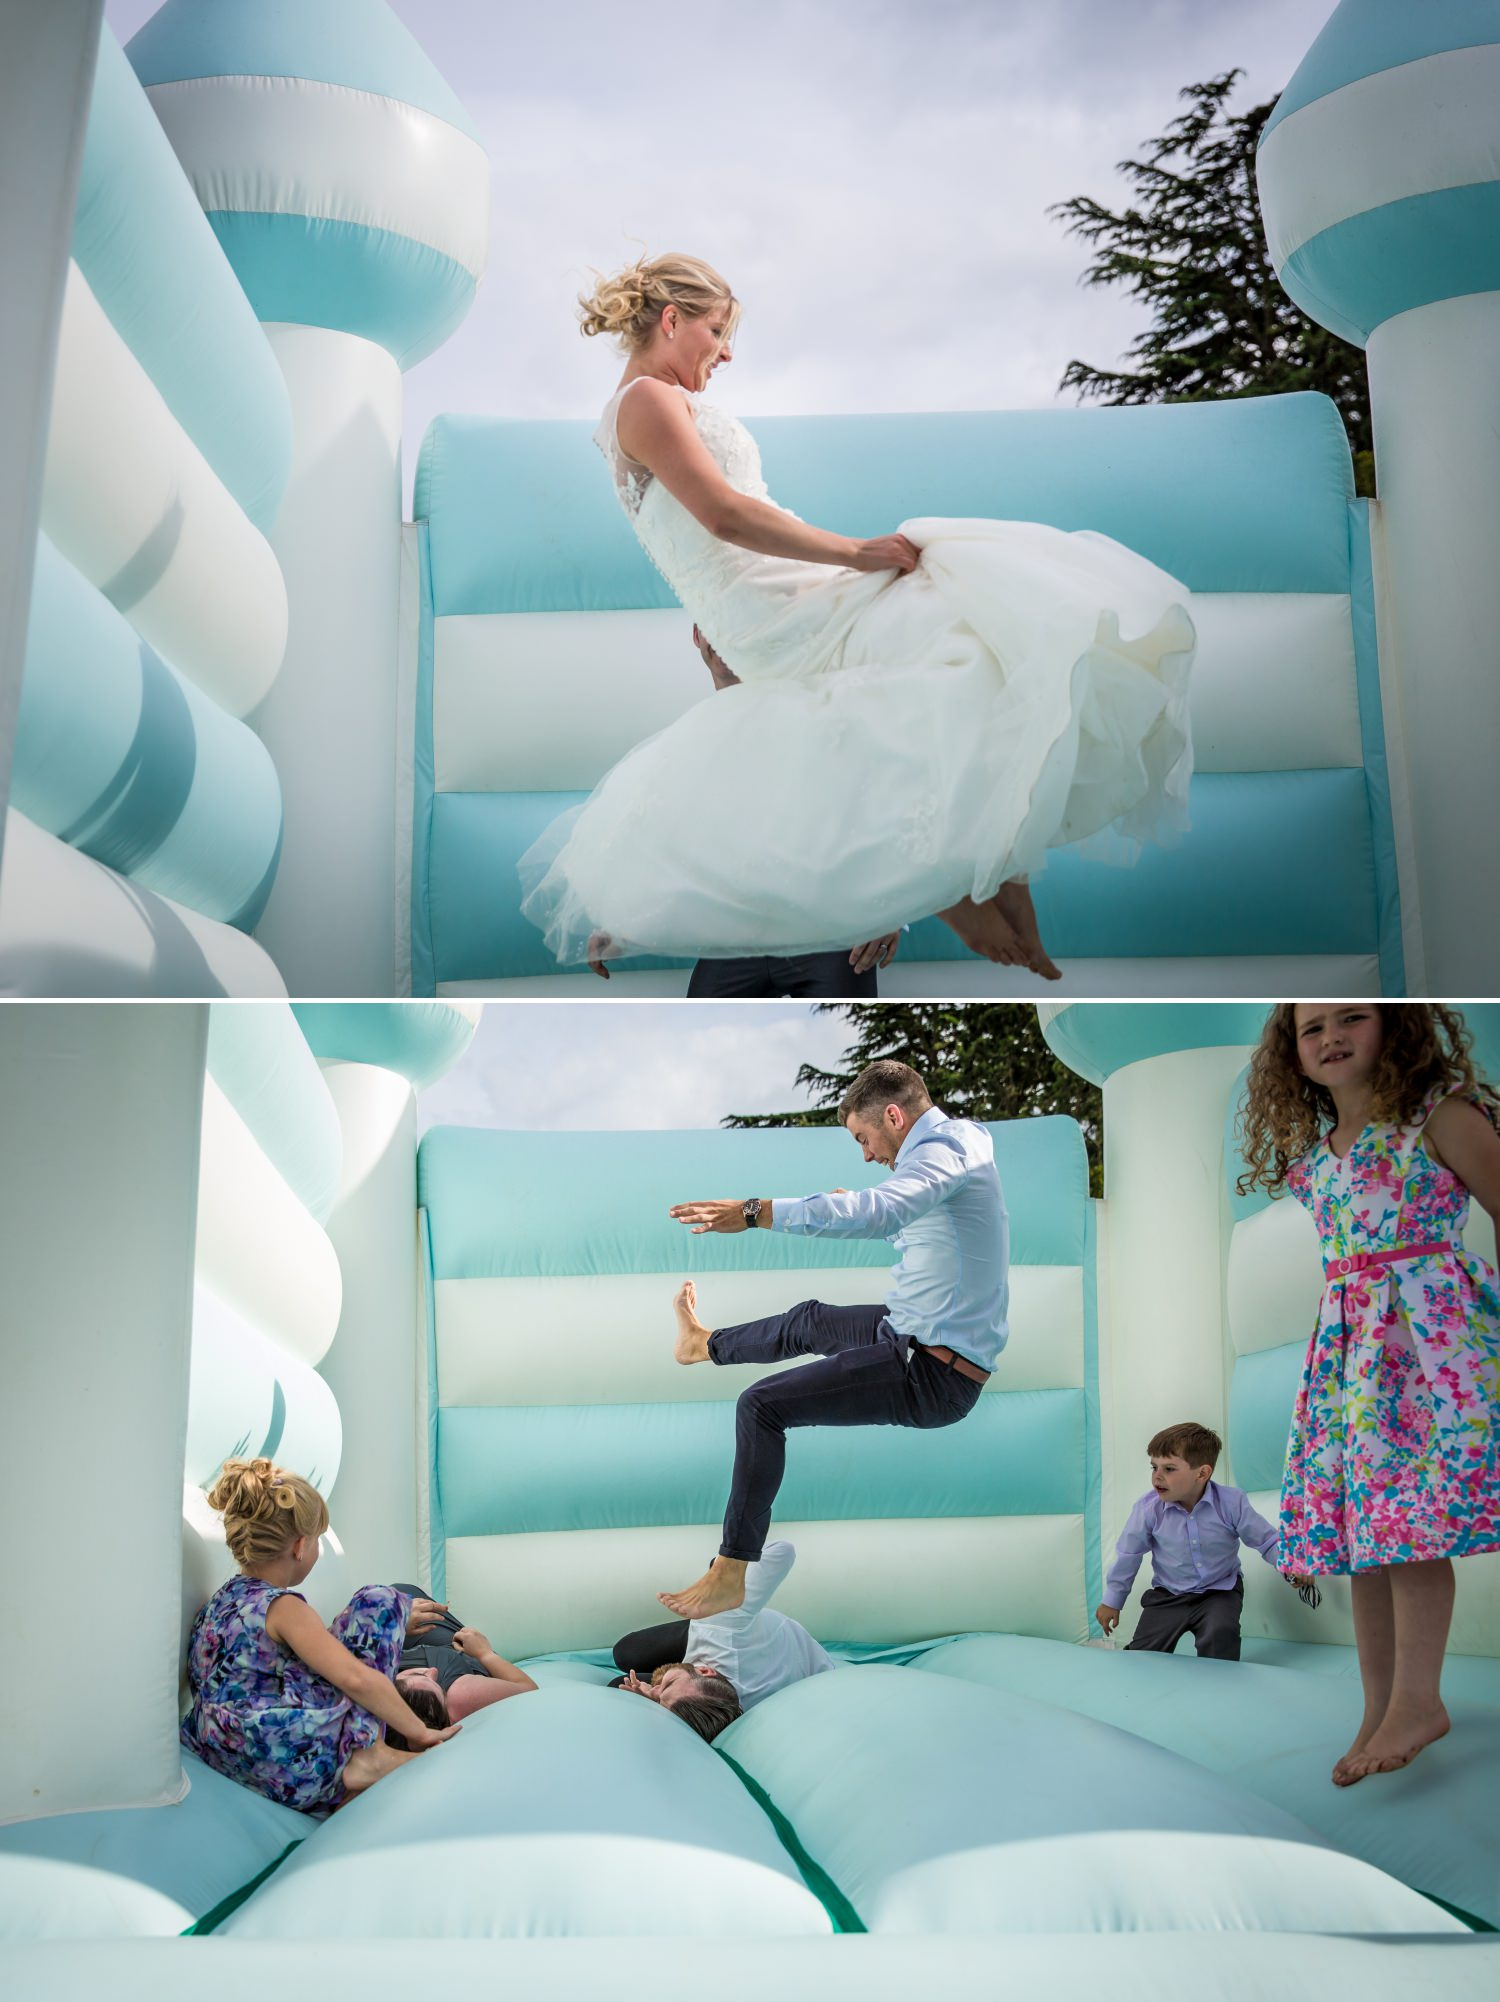 Bouncy castle wedding photography at Pentrehobyn Hall